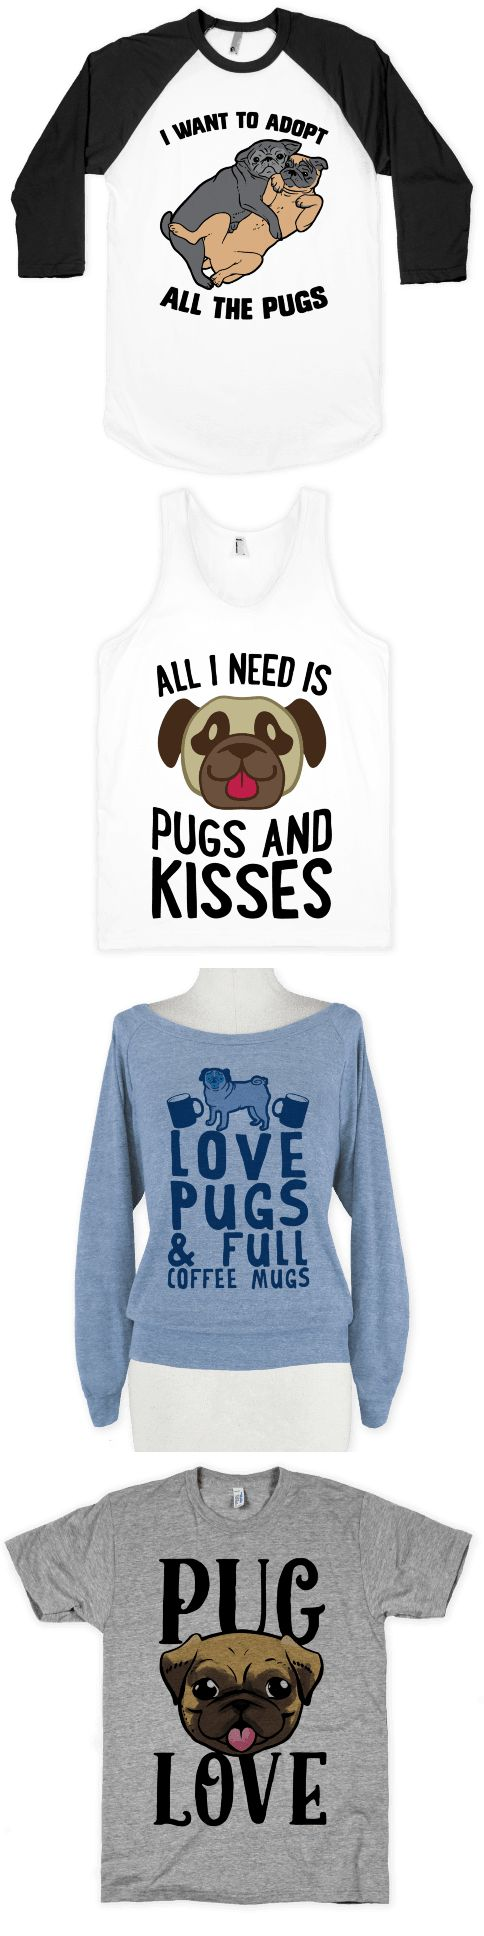 Pugs rhymes with hugs. Coincidence? We think not. Send your senses into a cuteness overload with this cuddly canine collection.